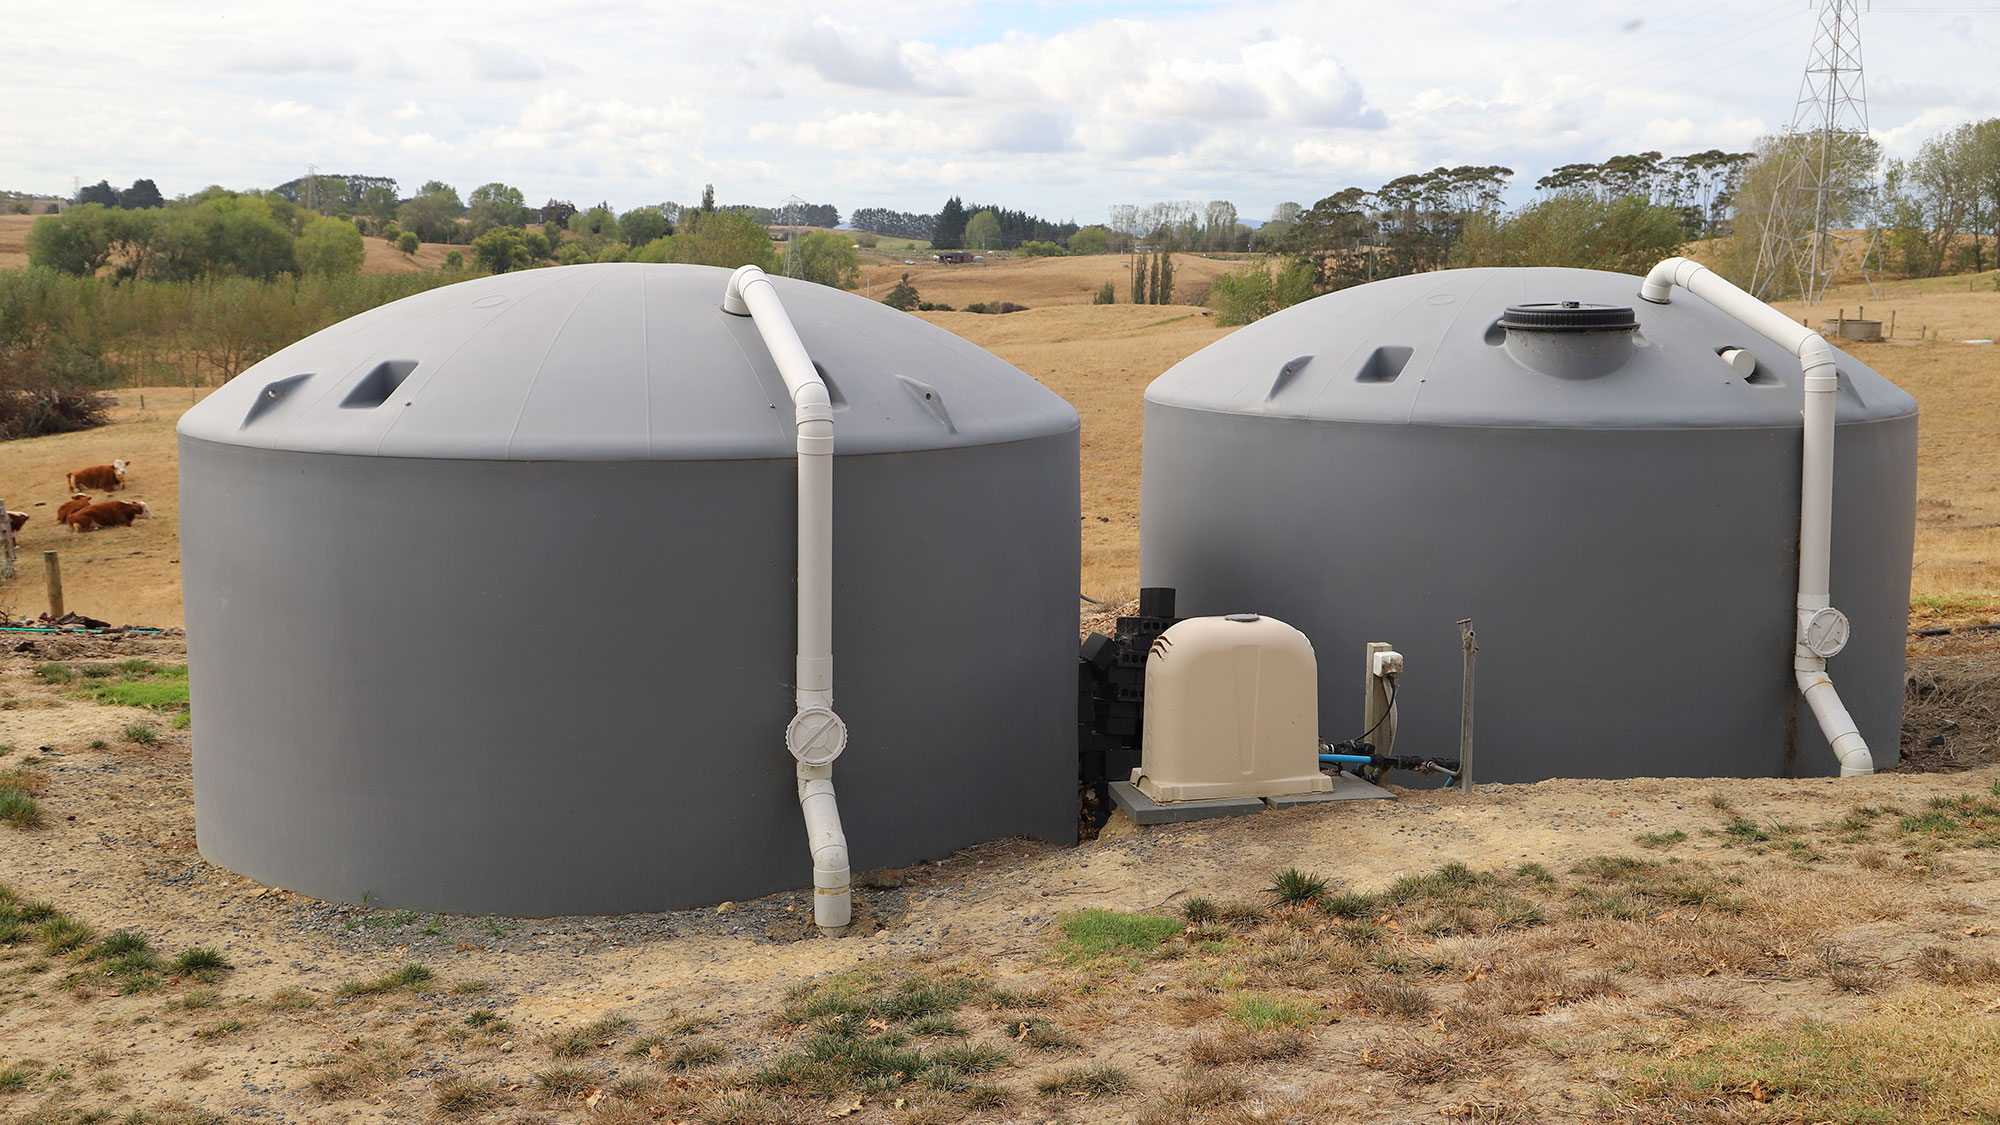 Water tanks getting low